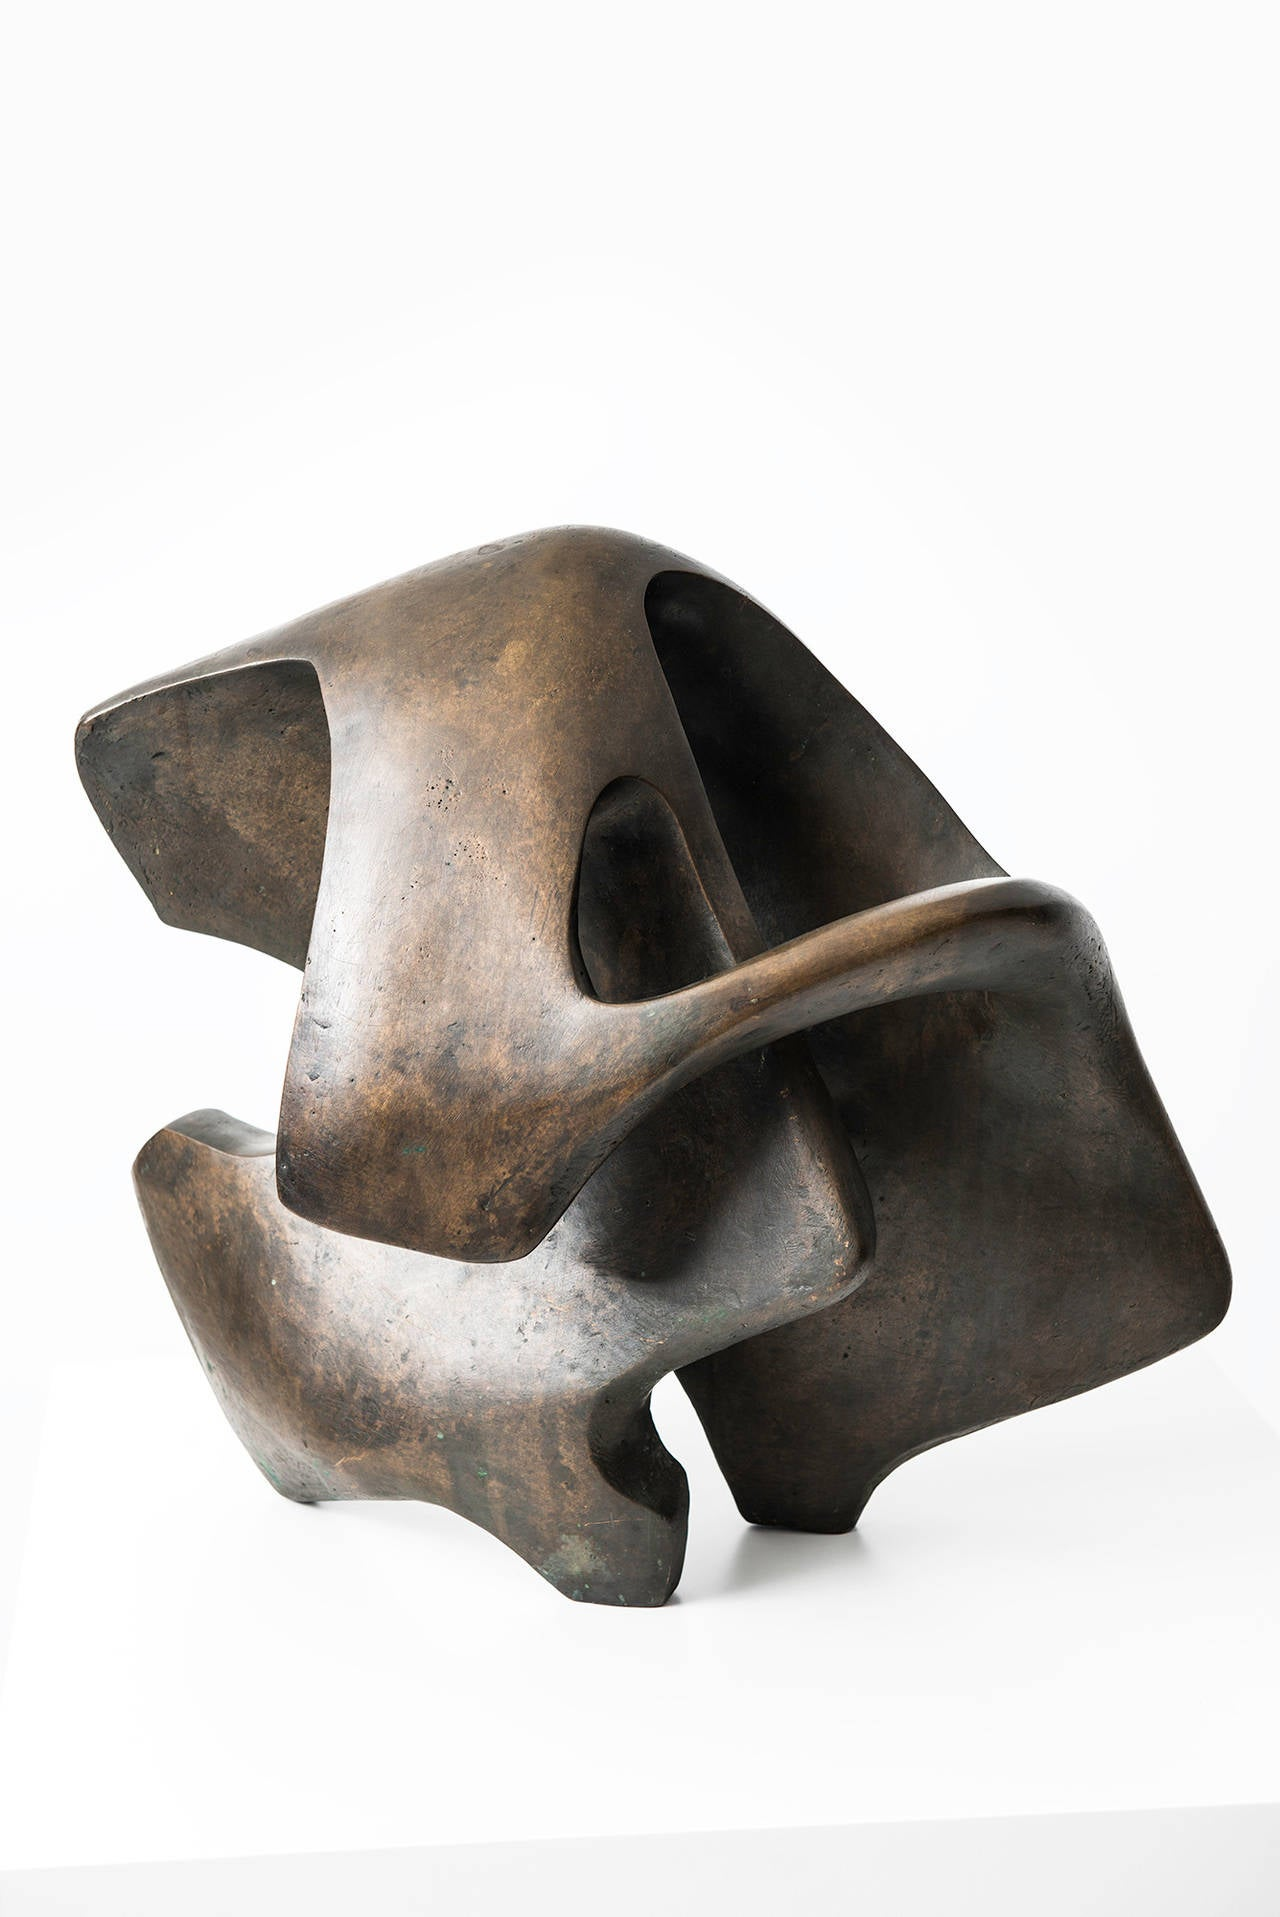 Anders tinsbo unique bronze sculpture for sale at 1stdibs - Bronze sculptures for sale ...